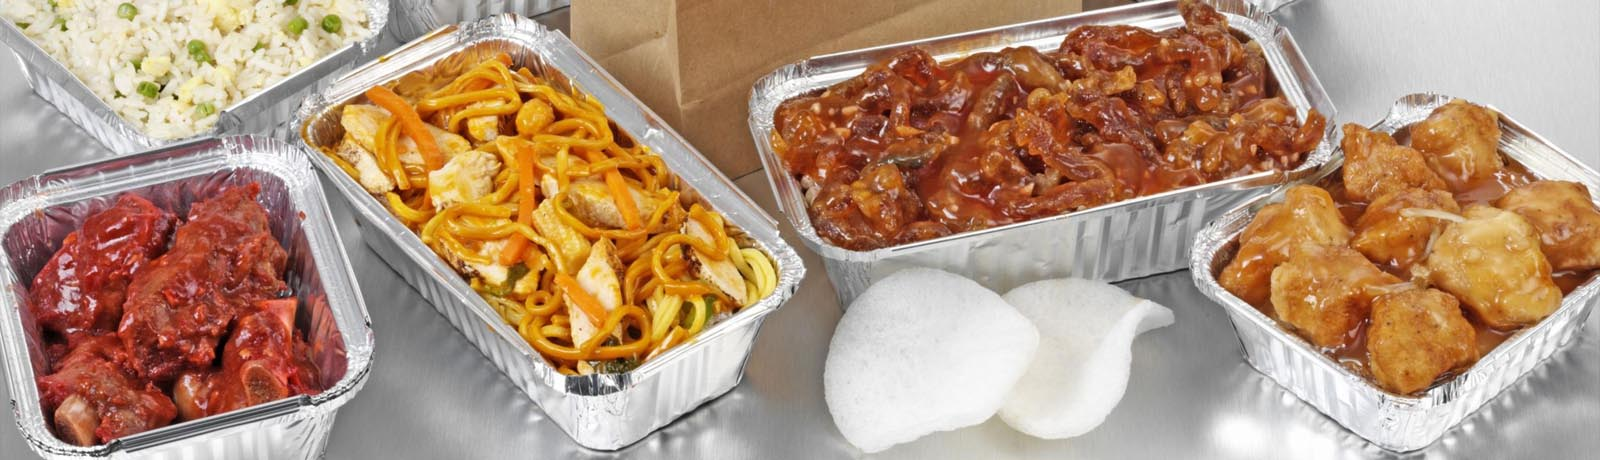 Silver Star Chinese Food - Browse Store